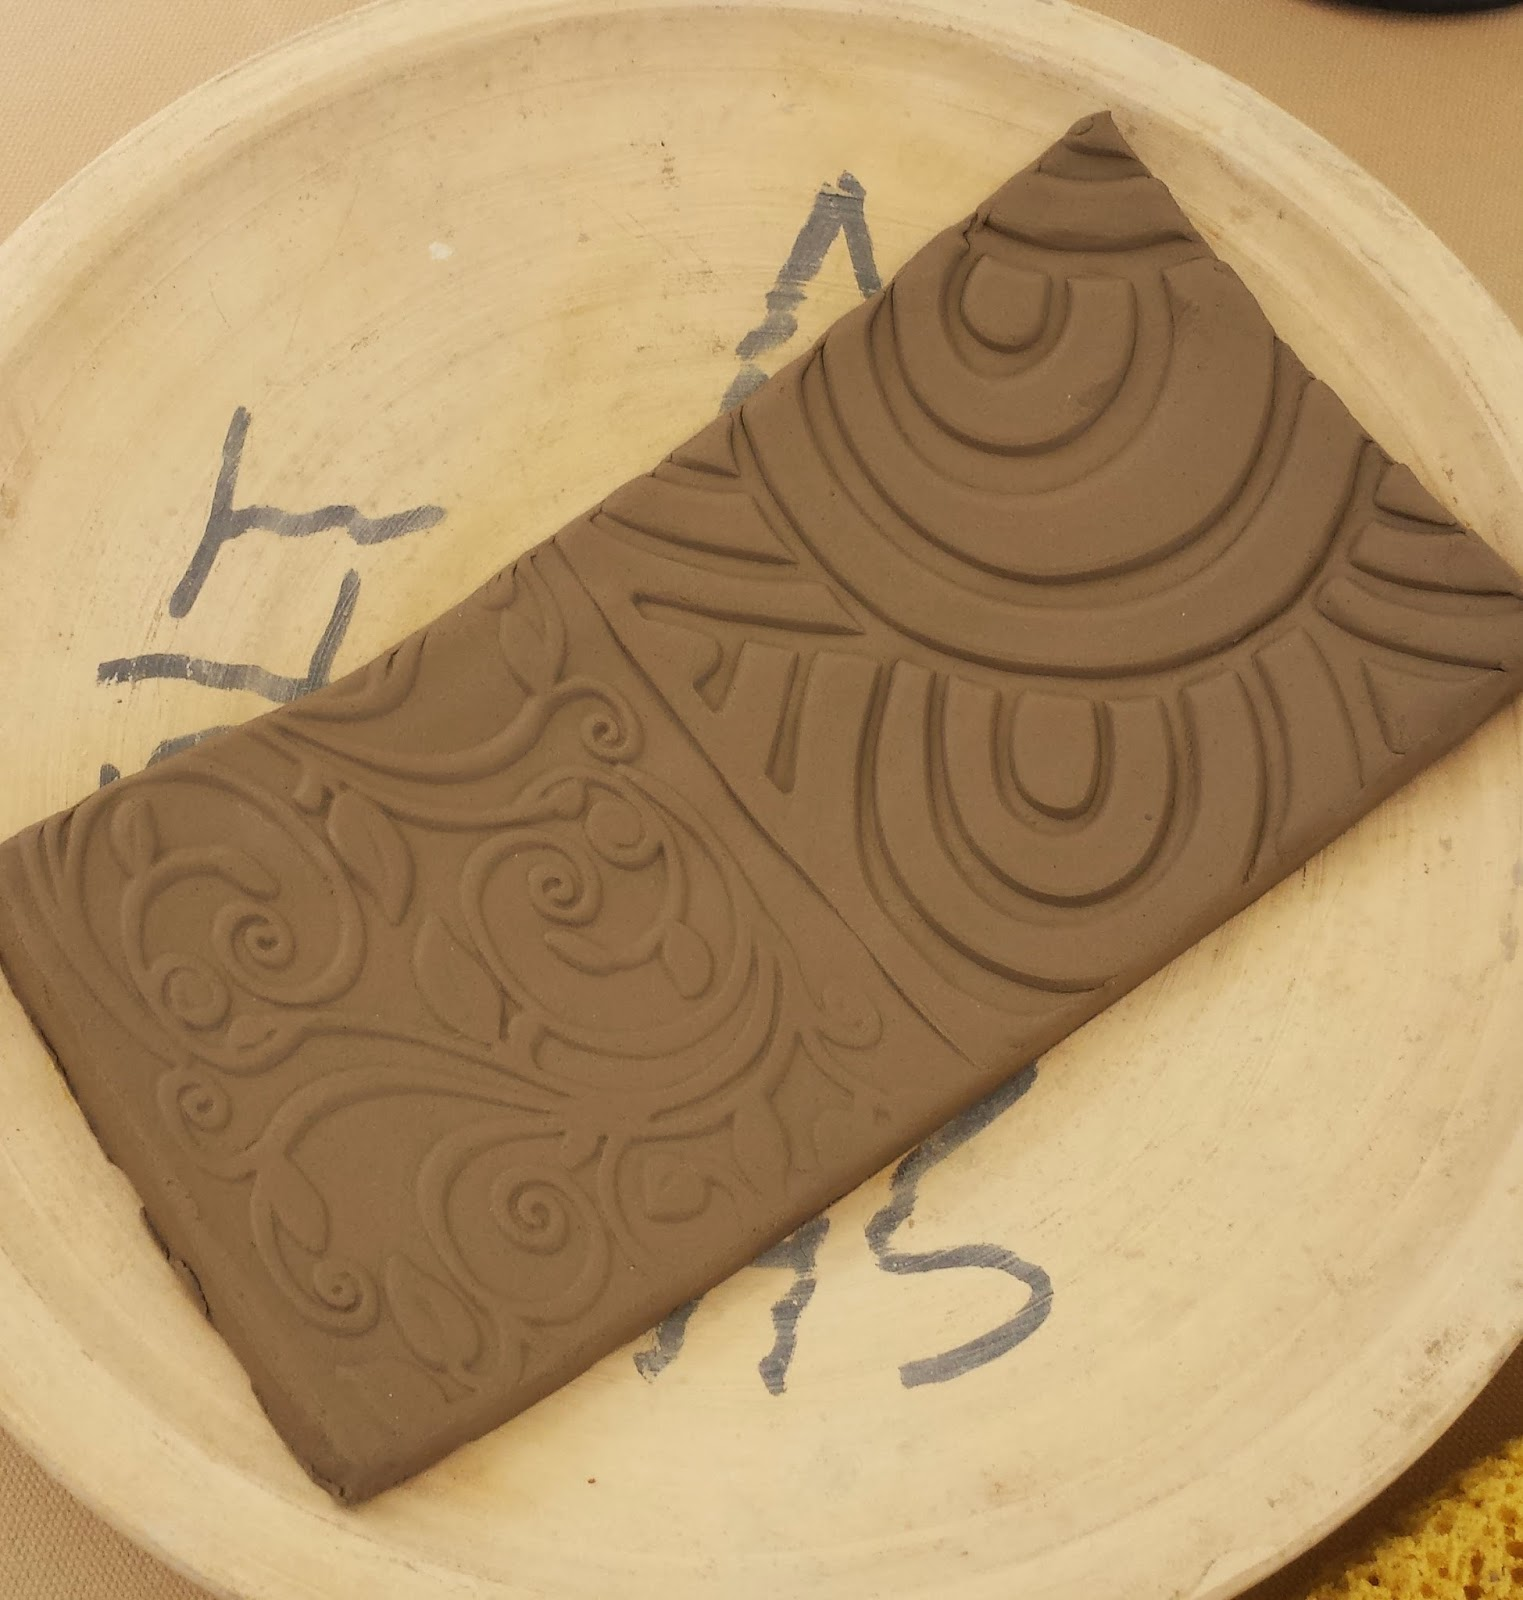 Handmade stoneware clay sushi plate in progress.